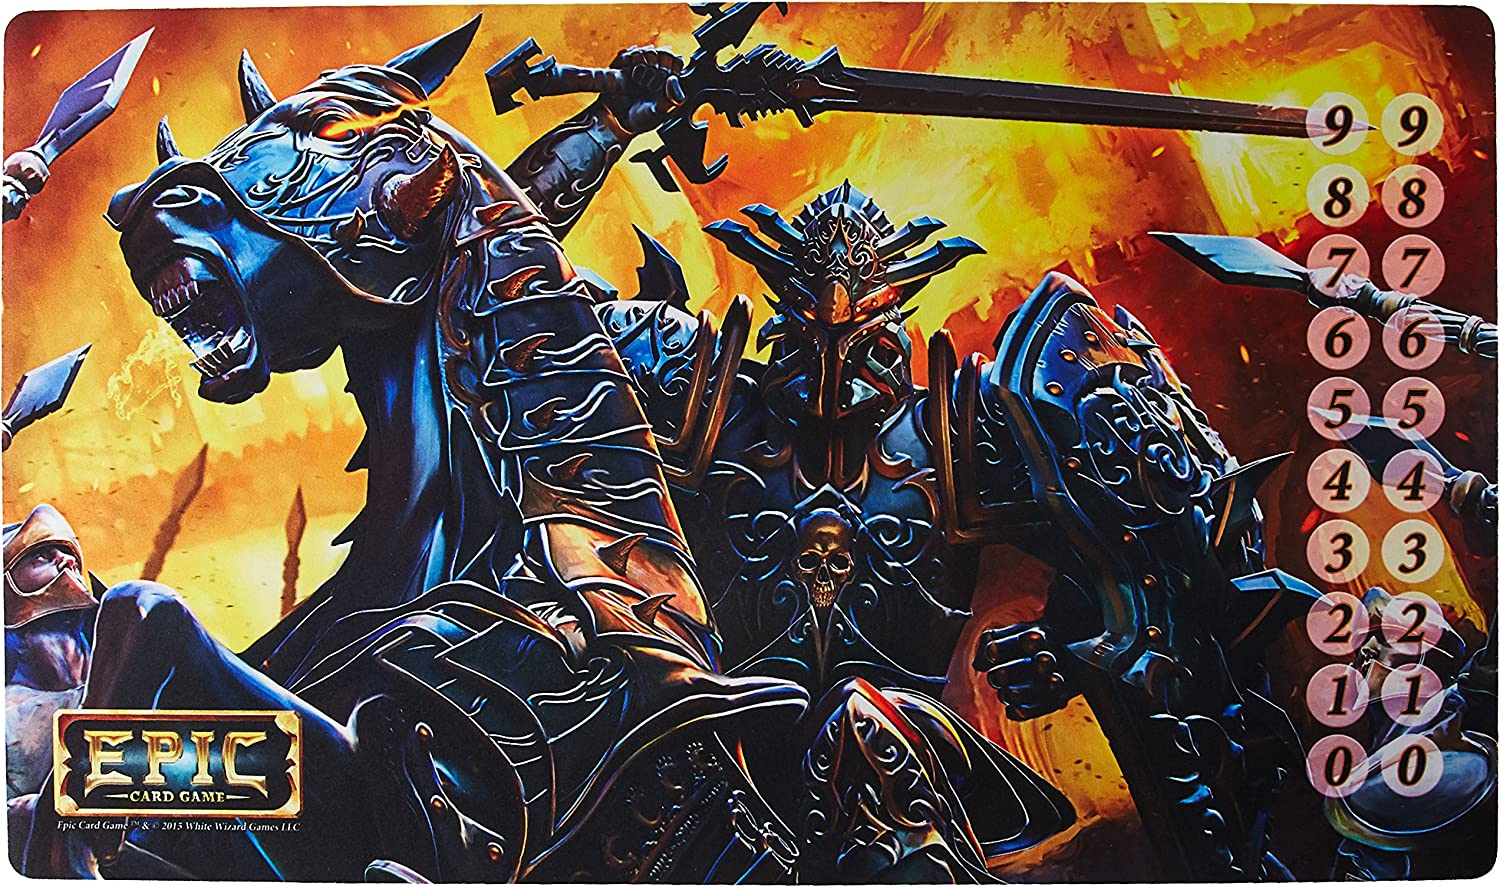 Weiß Wizard Games Epic World Dark Knight Playmat Card Game B01C3CPIUO Kindlich  | Authentische Garantie